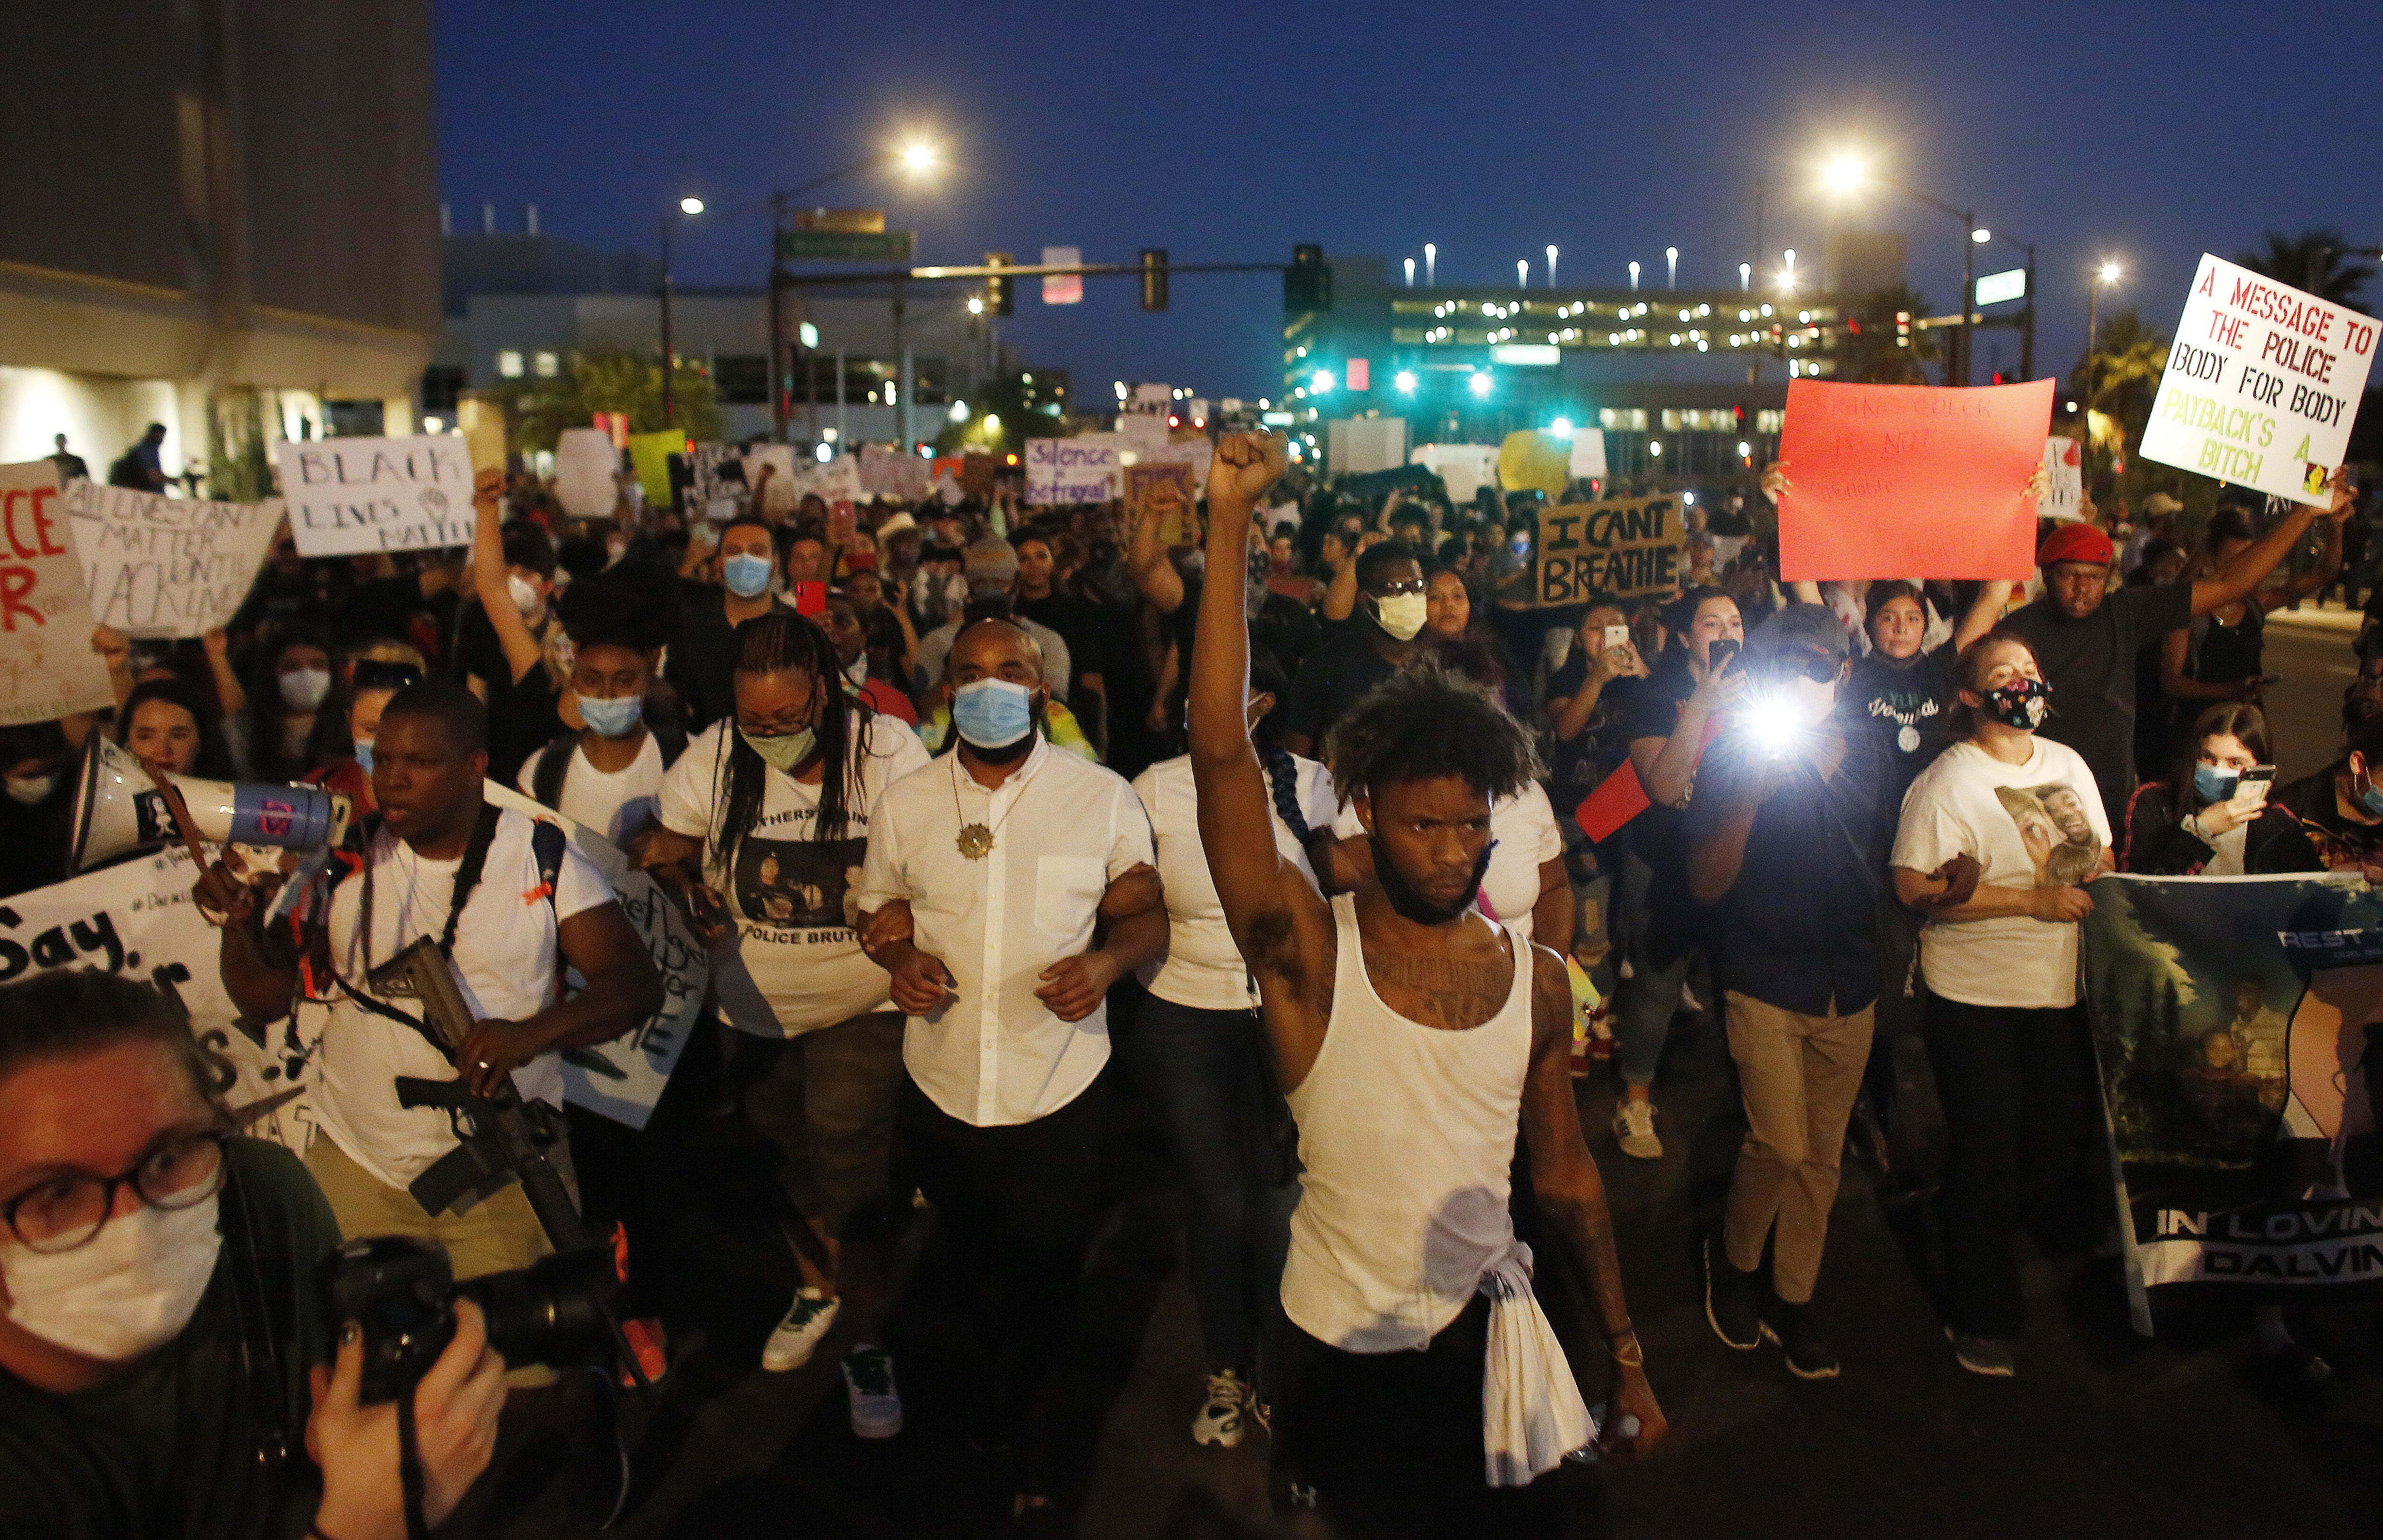 Hundreds protest in downtown Phoenix over George Floyd's death; pepper spray used on protesters